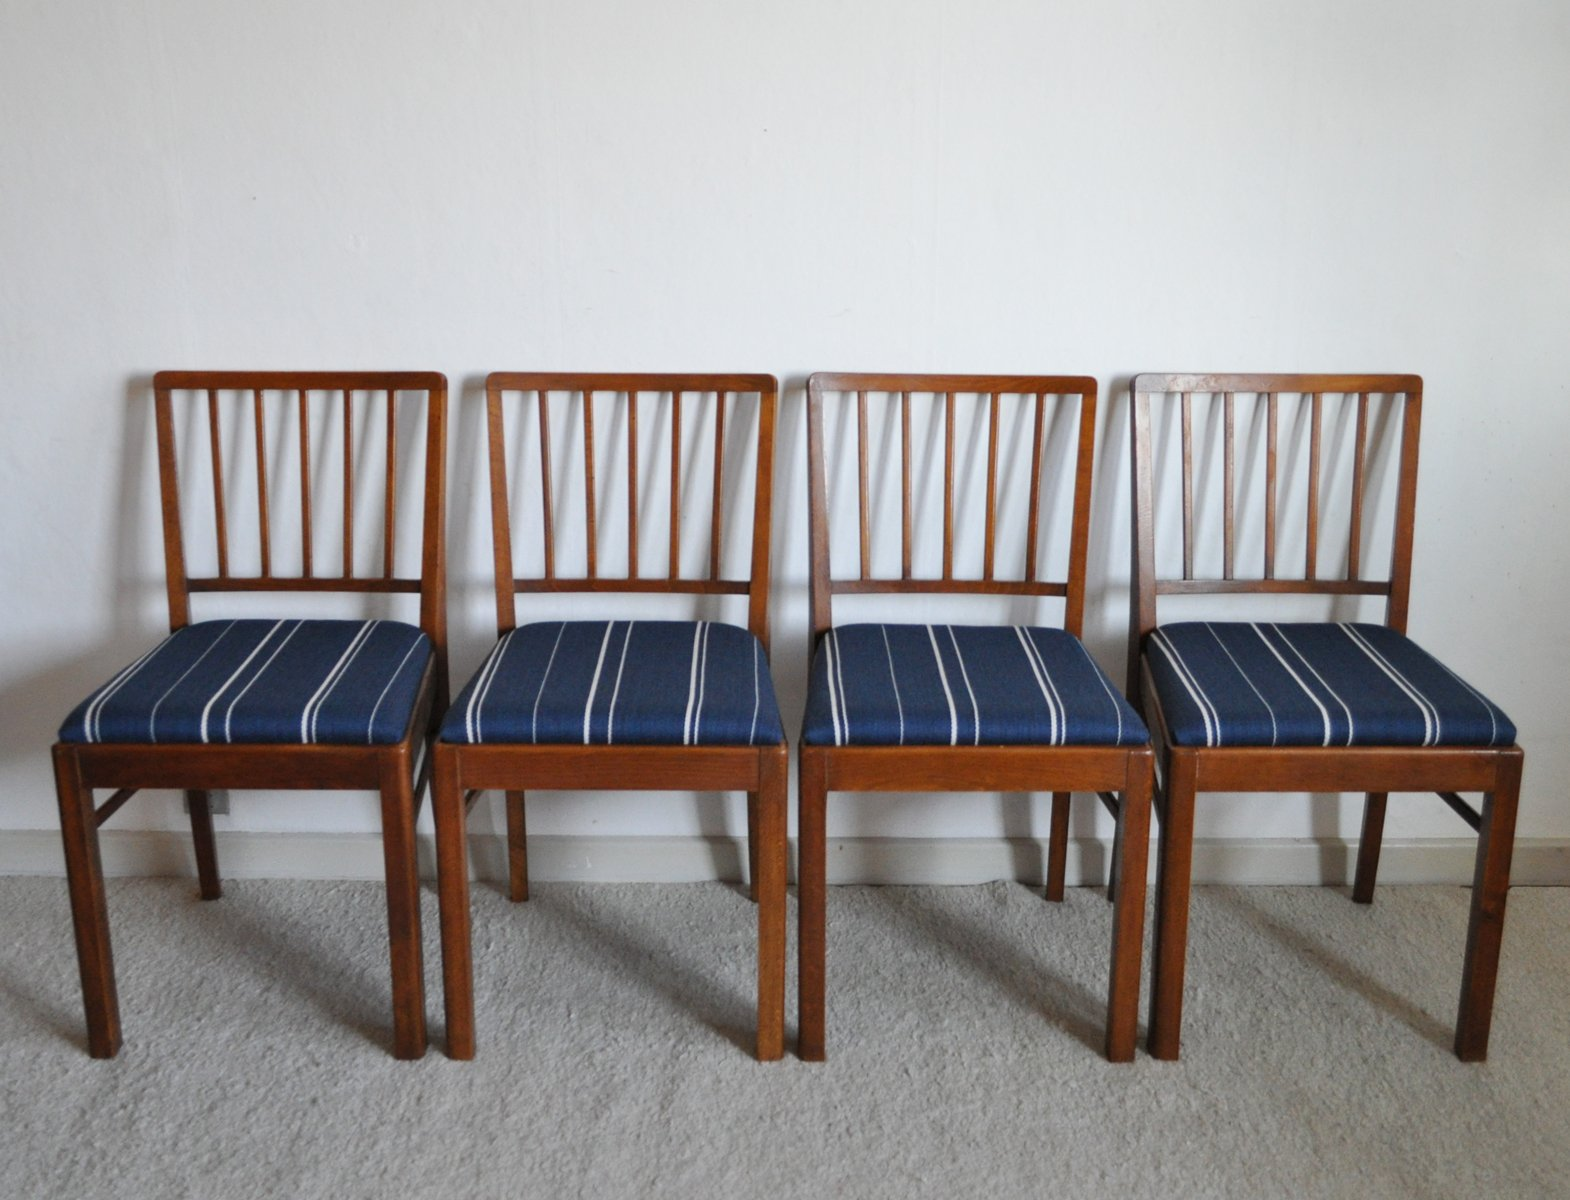 Danish Dining Chairs 1940s Set Of 4 For Sale At Pamono